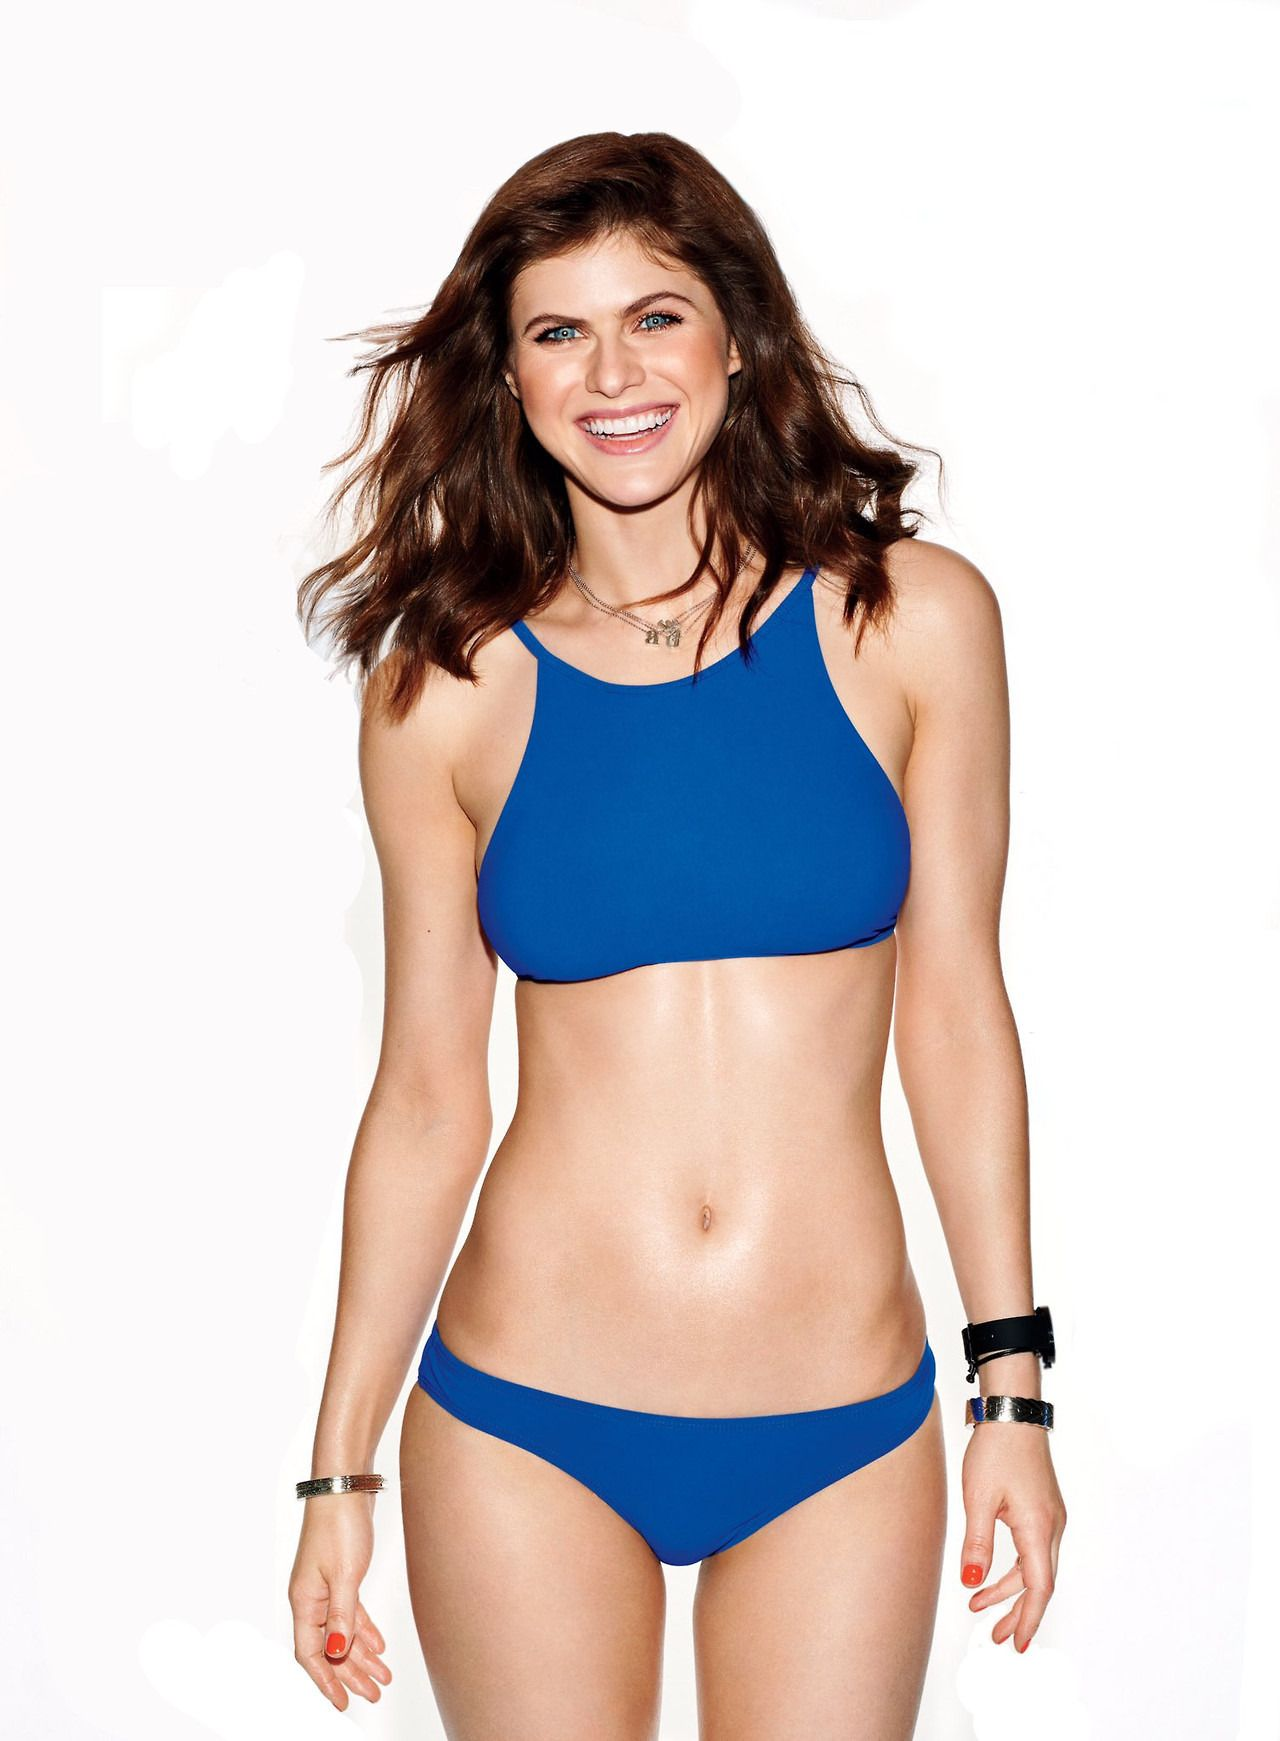 Alexandra daddario too hot